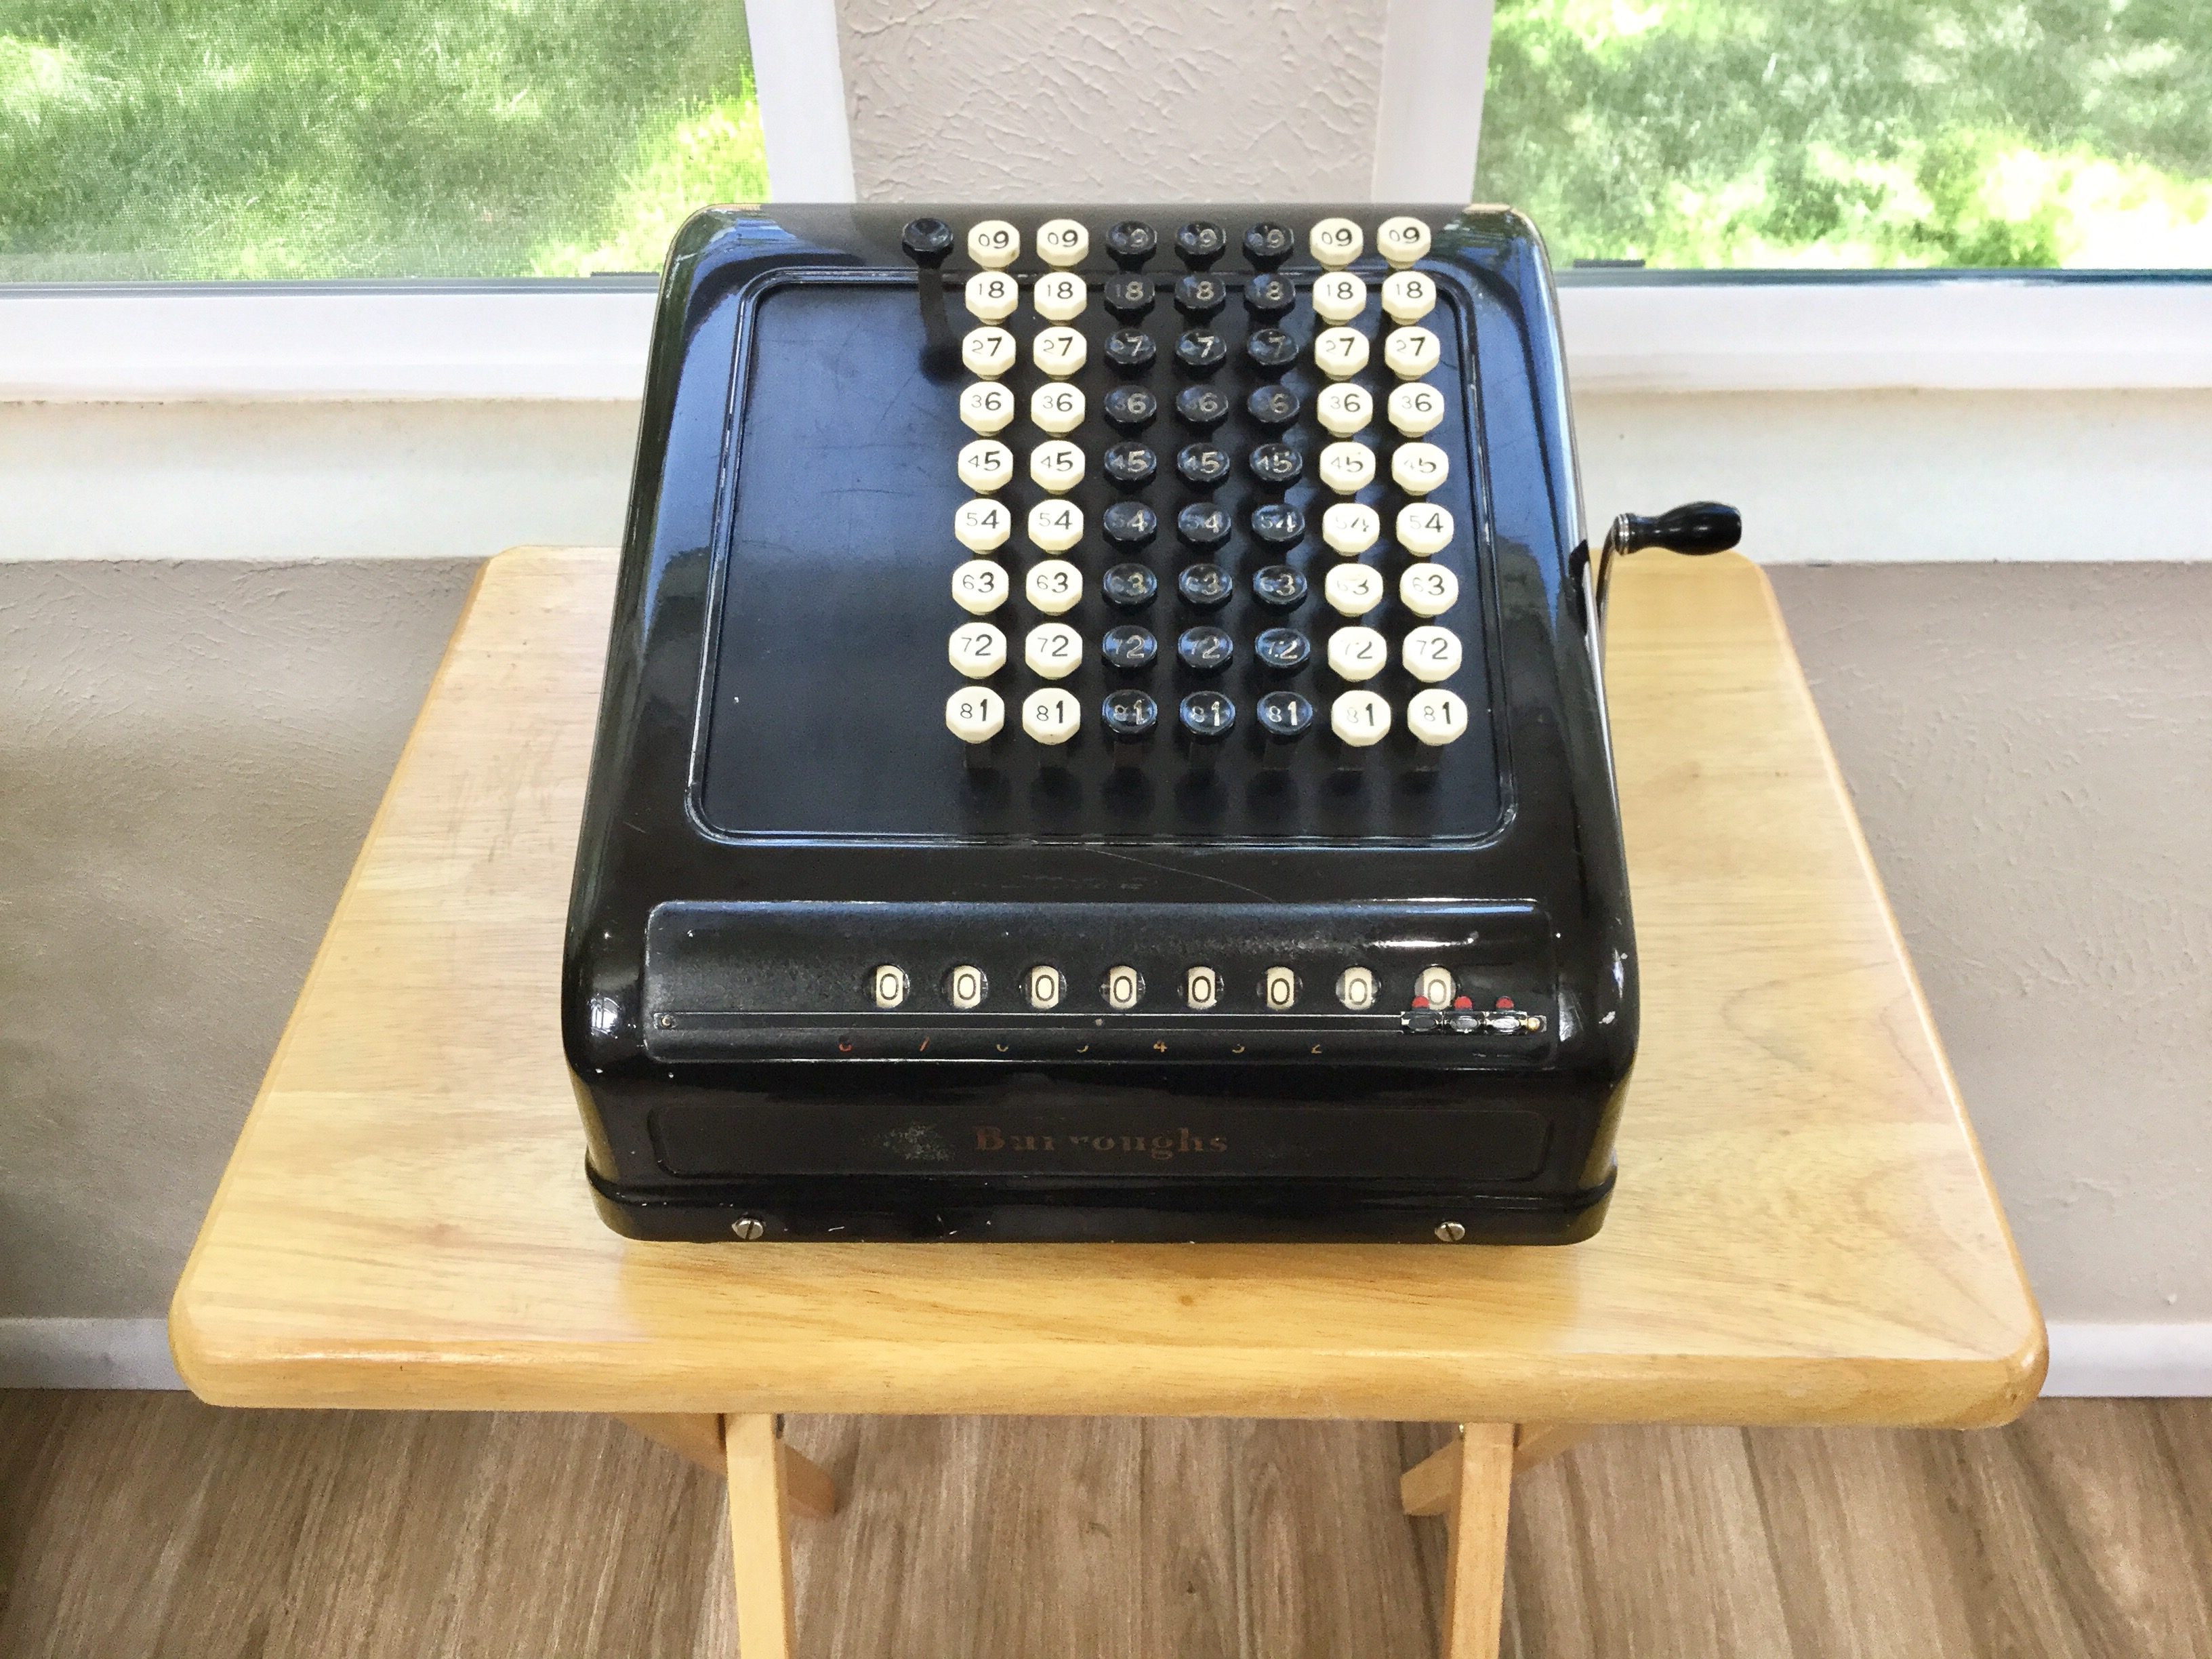 Burroughs Key-Operated Adding Machine